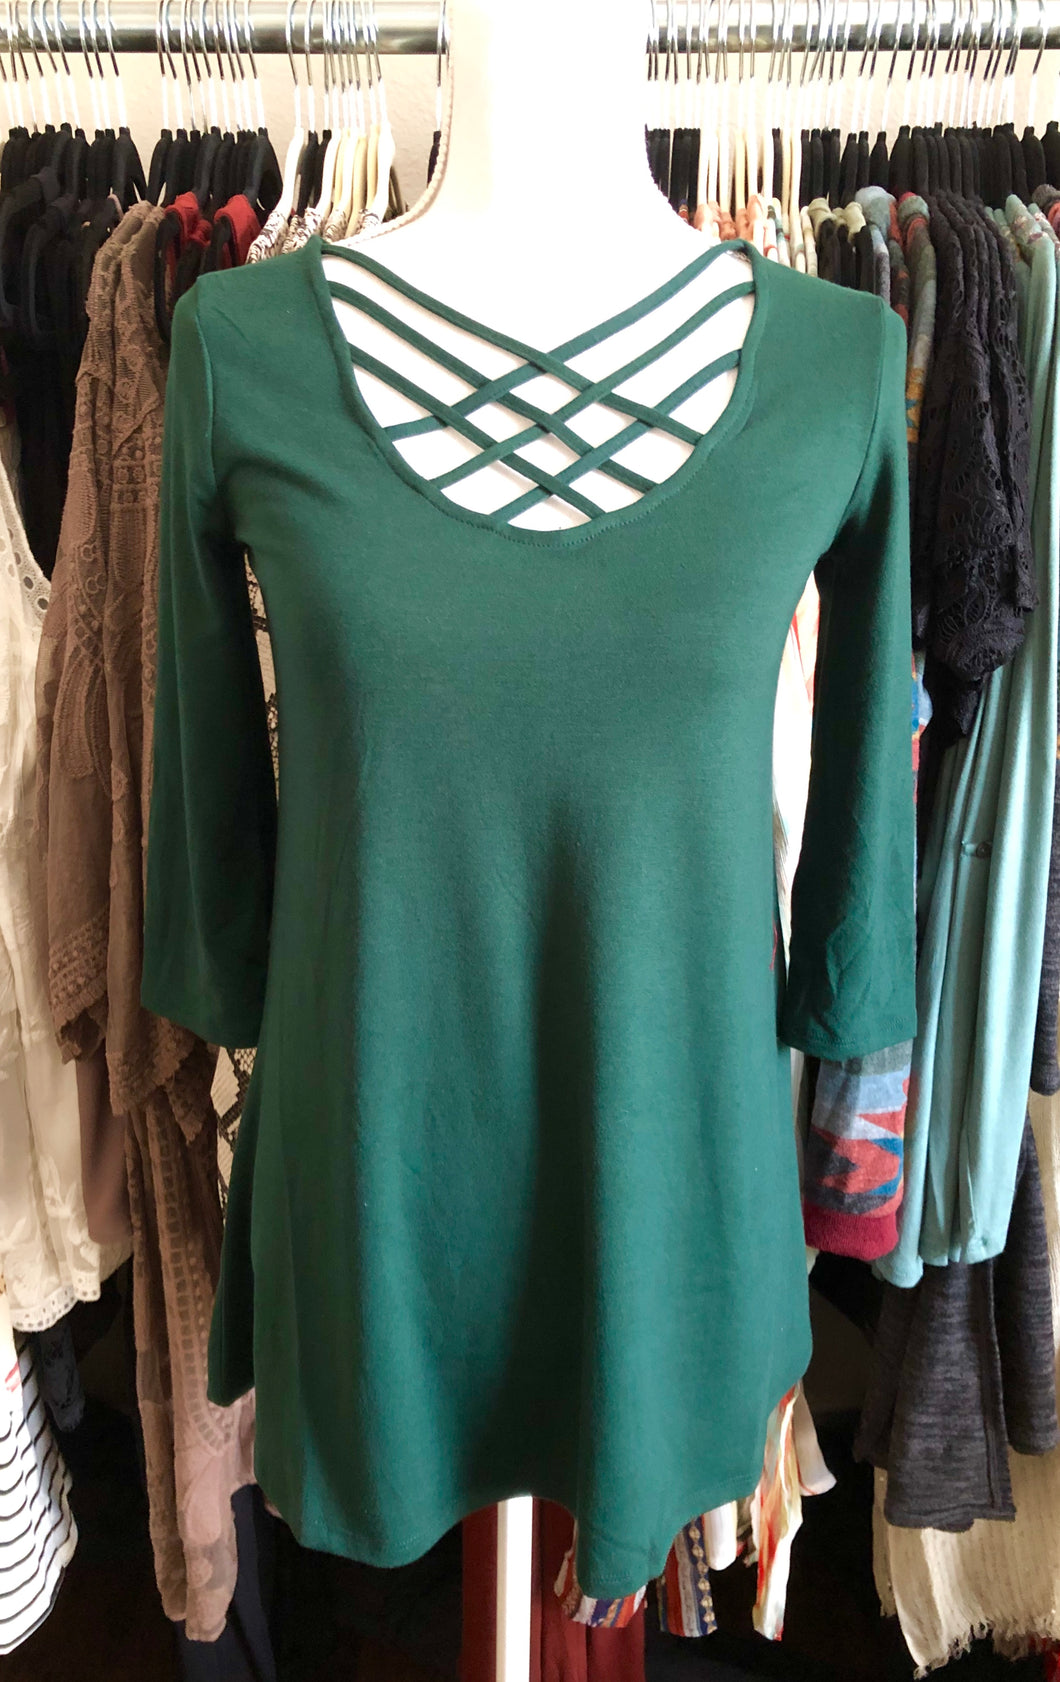 Hunter Green Criss Cross 3/4 inch sleeve top - Sm - XL